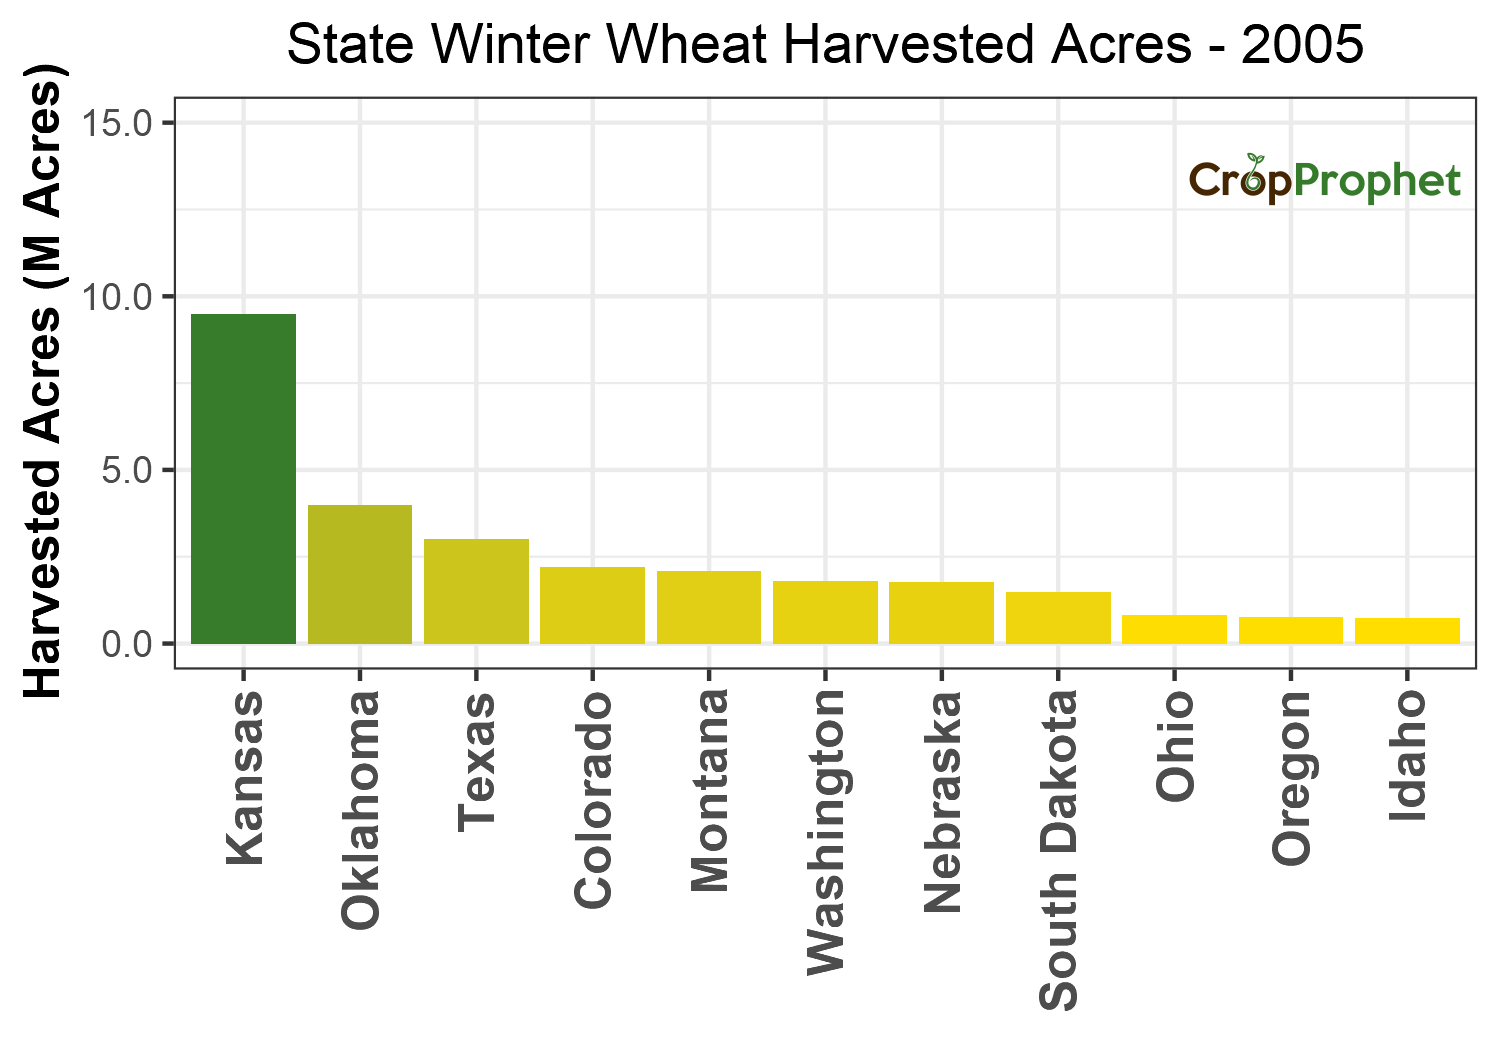 Winter wheat Harvested Acres by State - 2005 Rankings